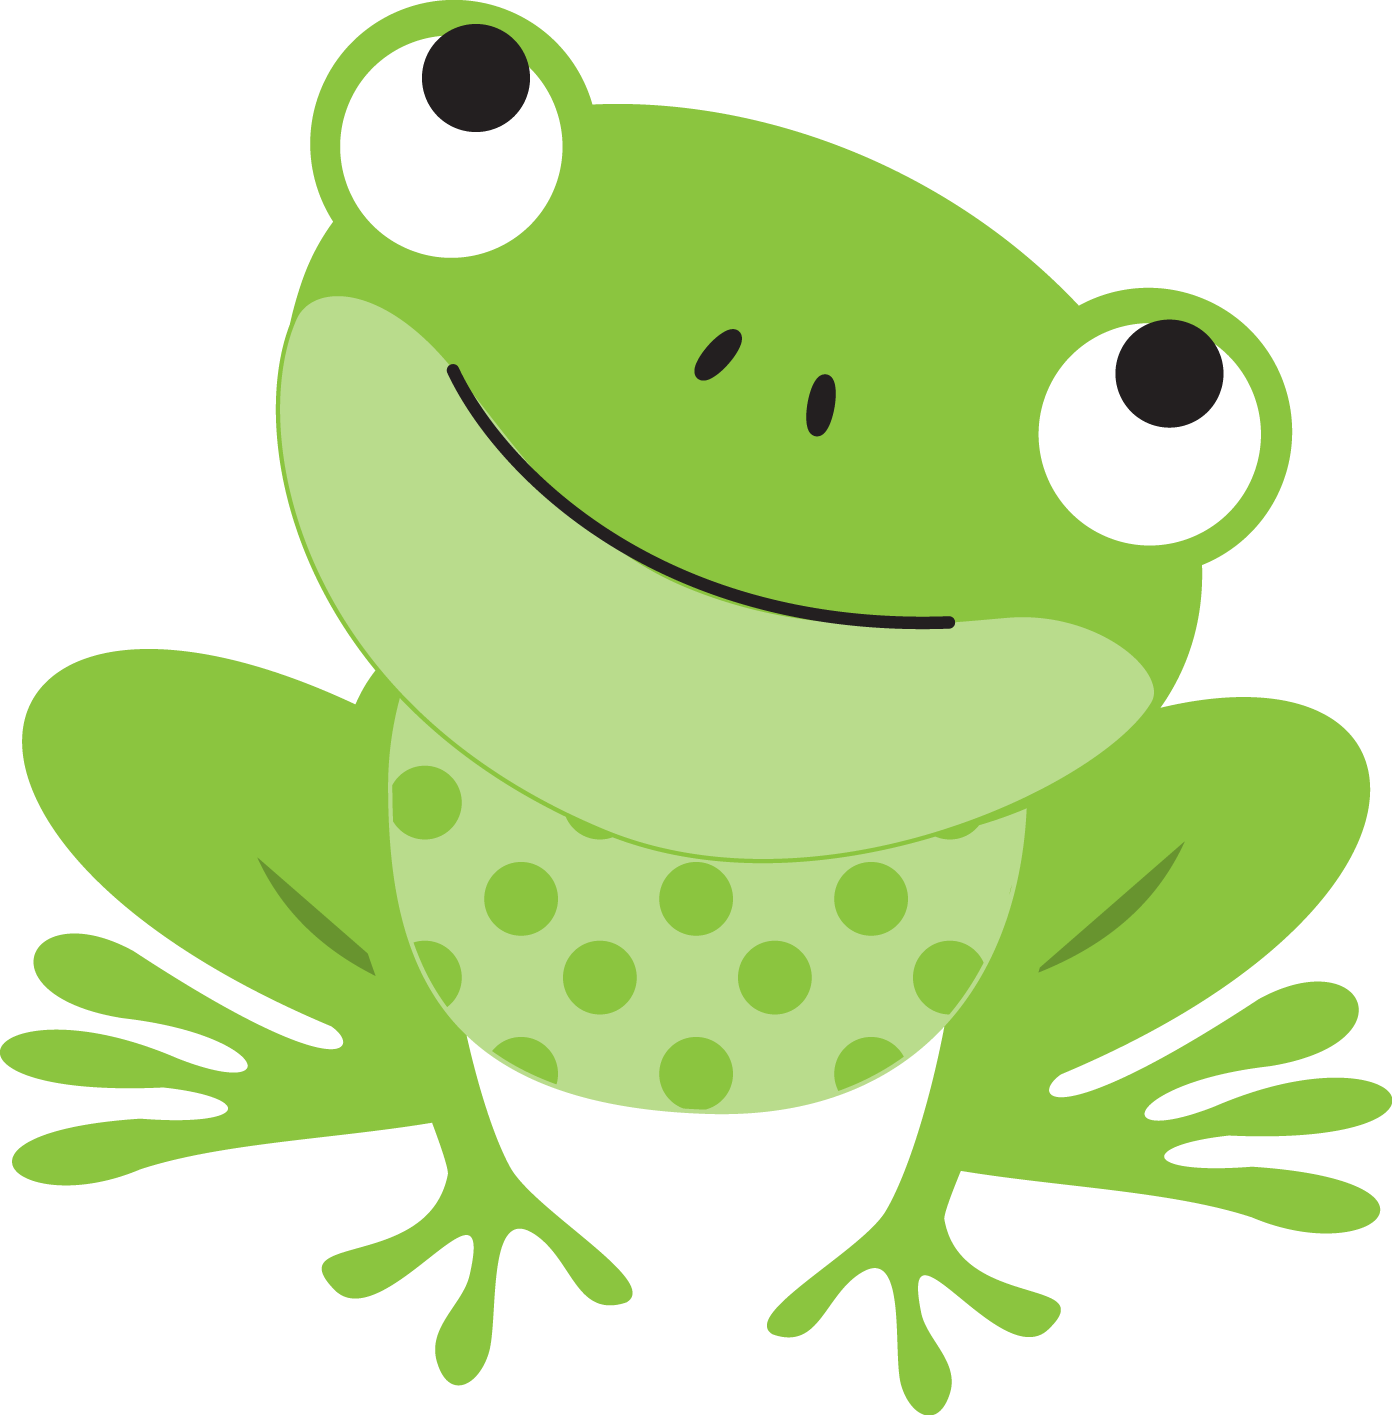 NicePng_kermit-the-frog-png_677968.png